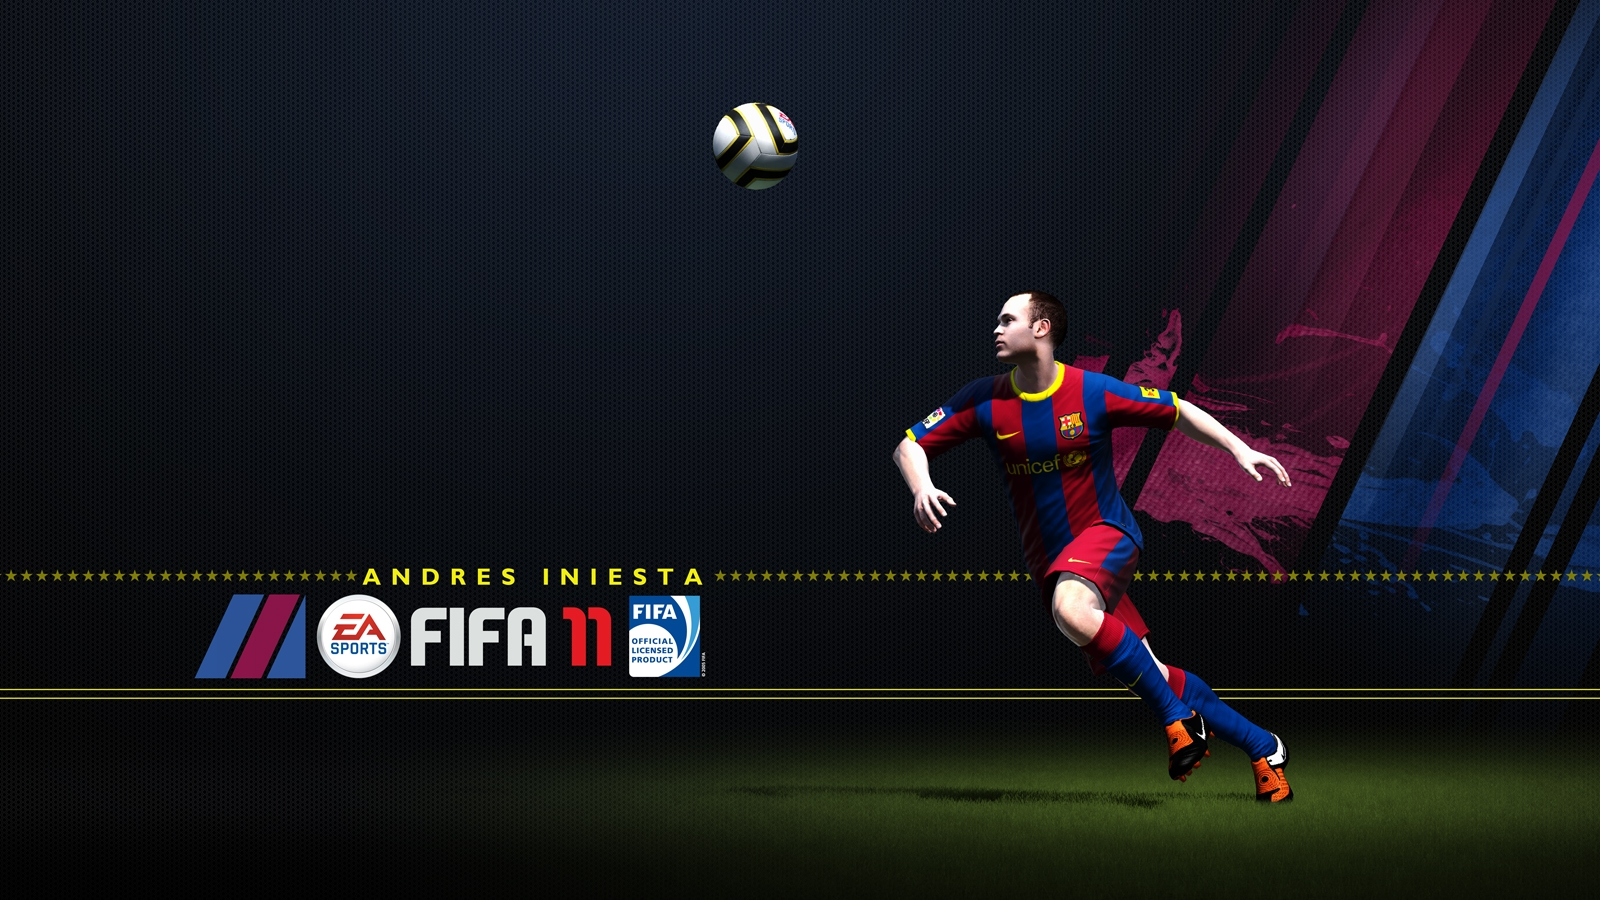 iniesta wallpapers (93)